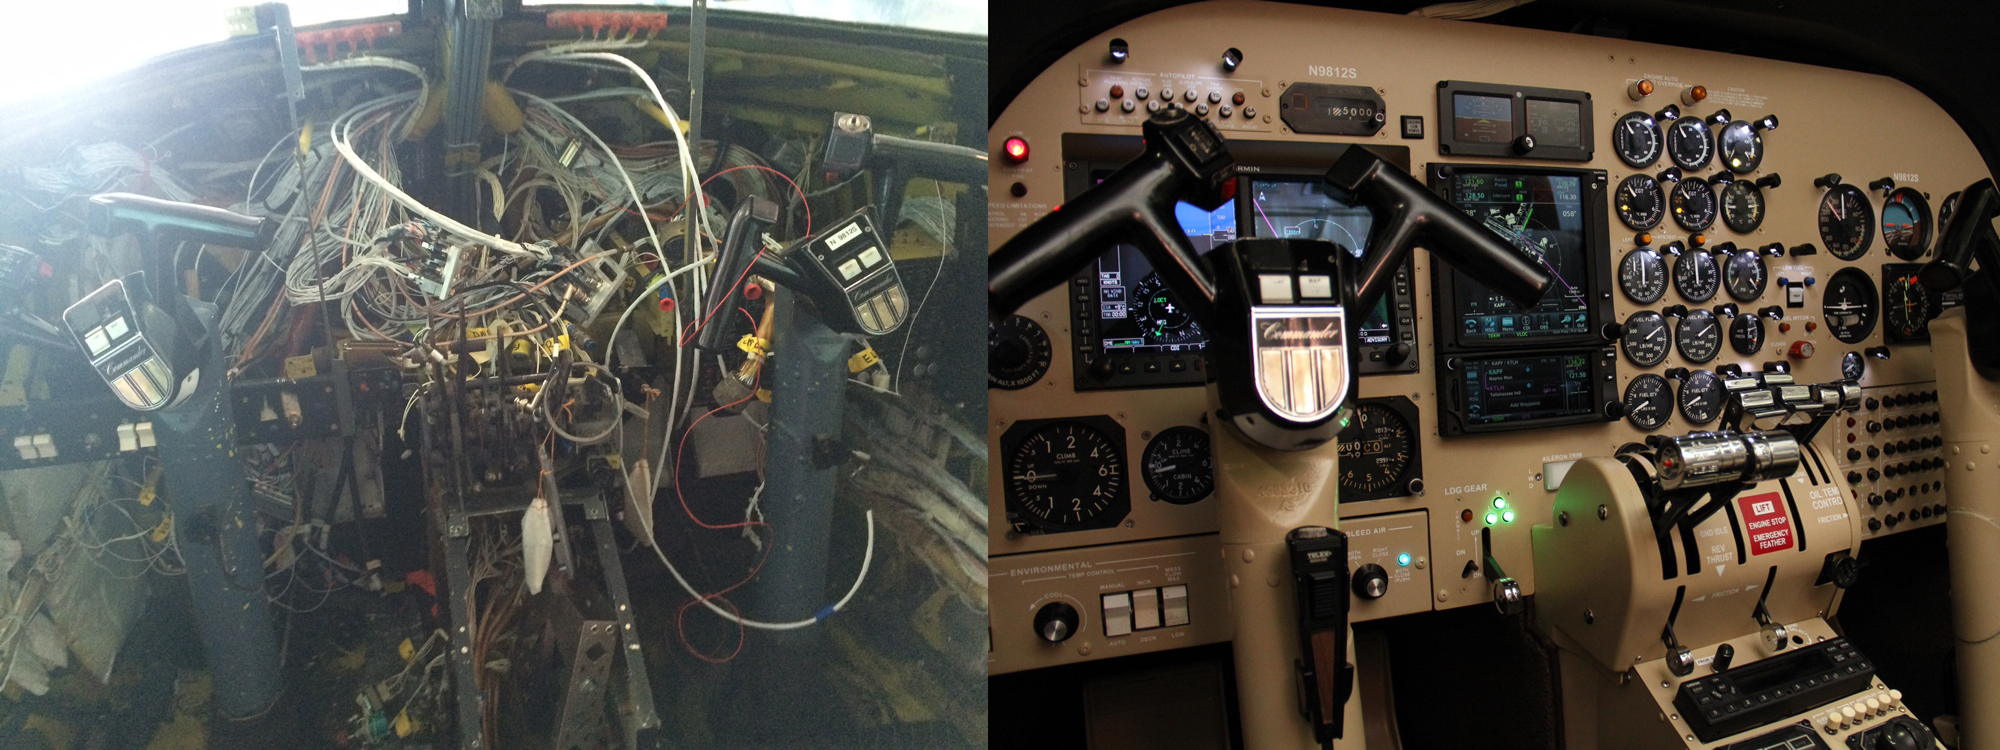 Avionics panel before and after.